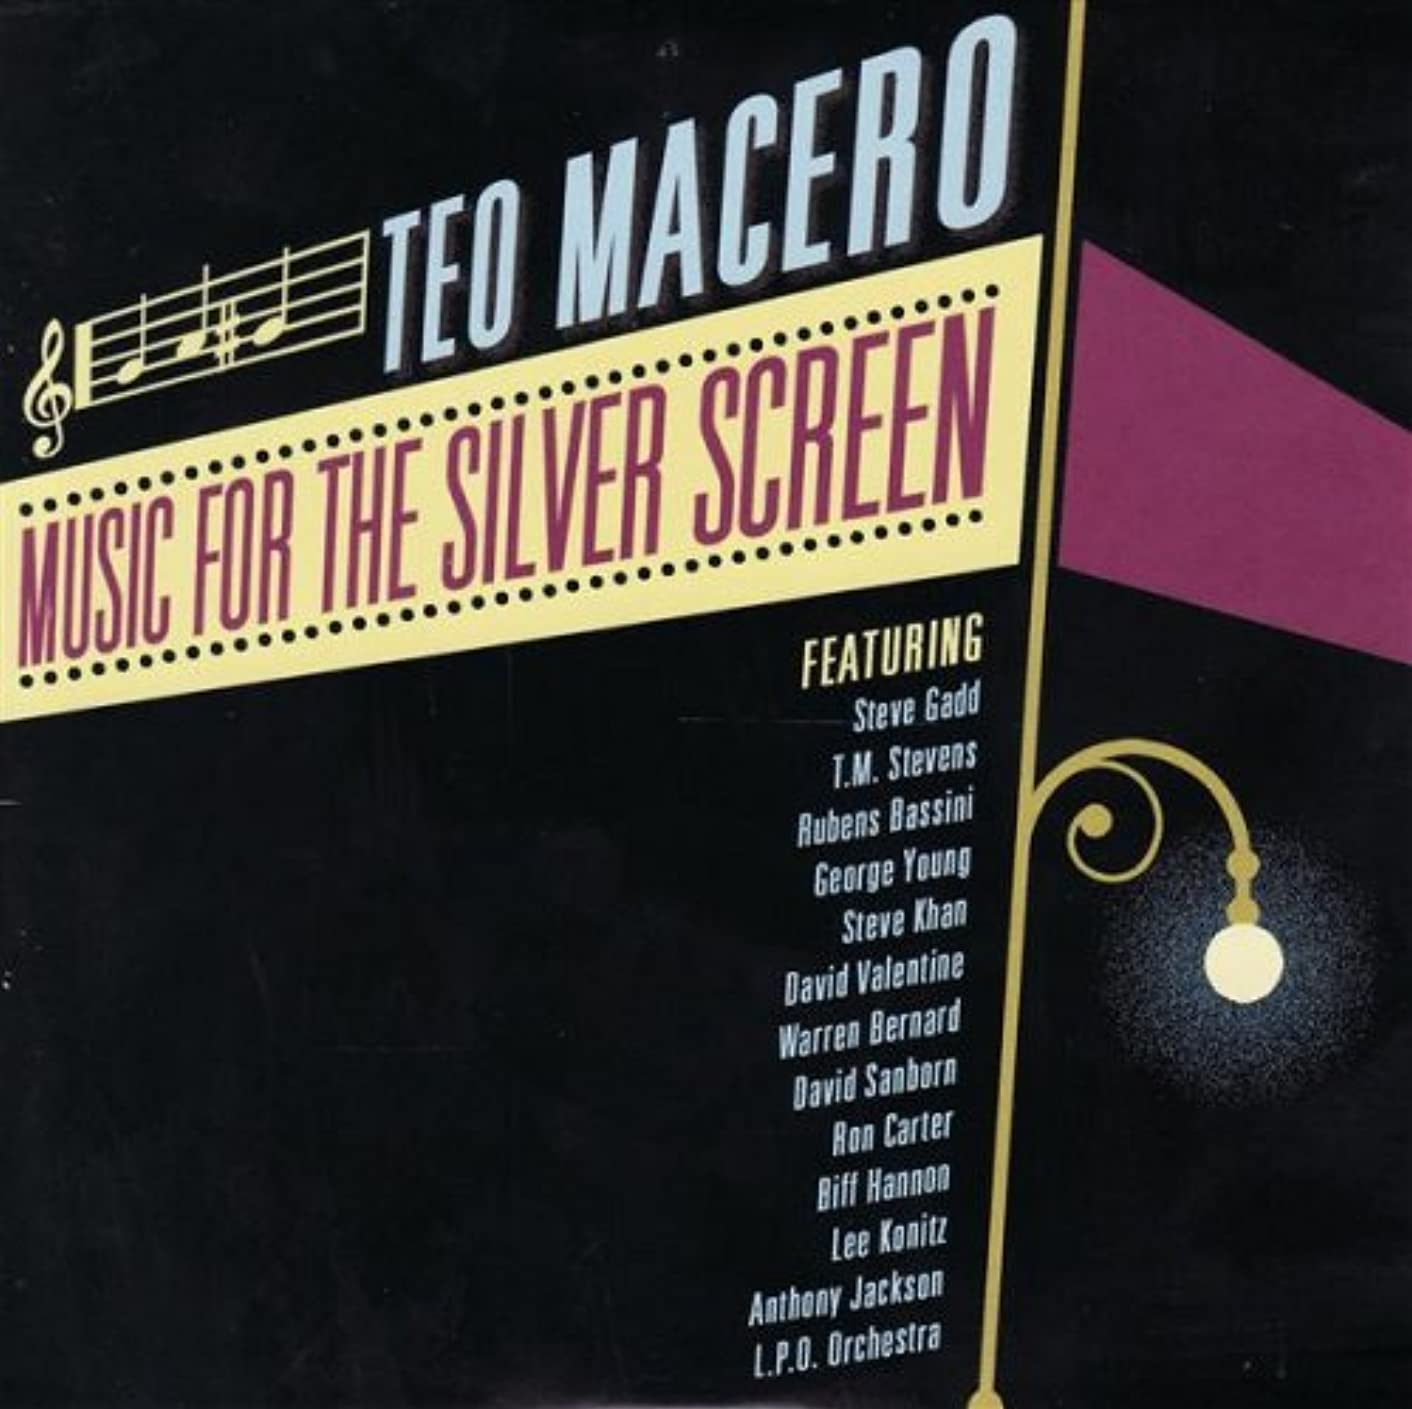 Music for the Silver Screen